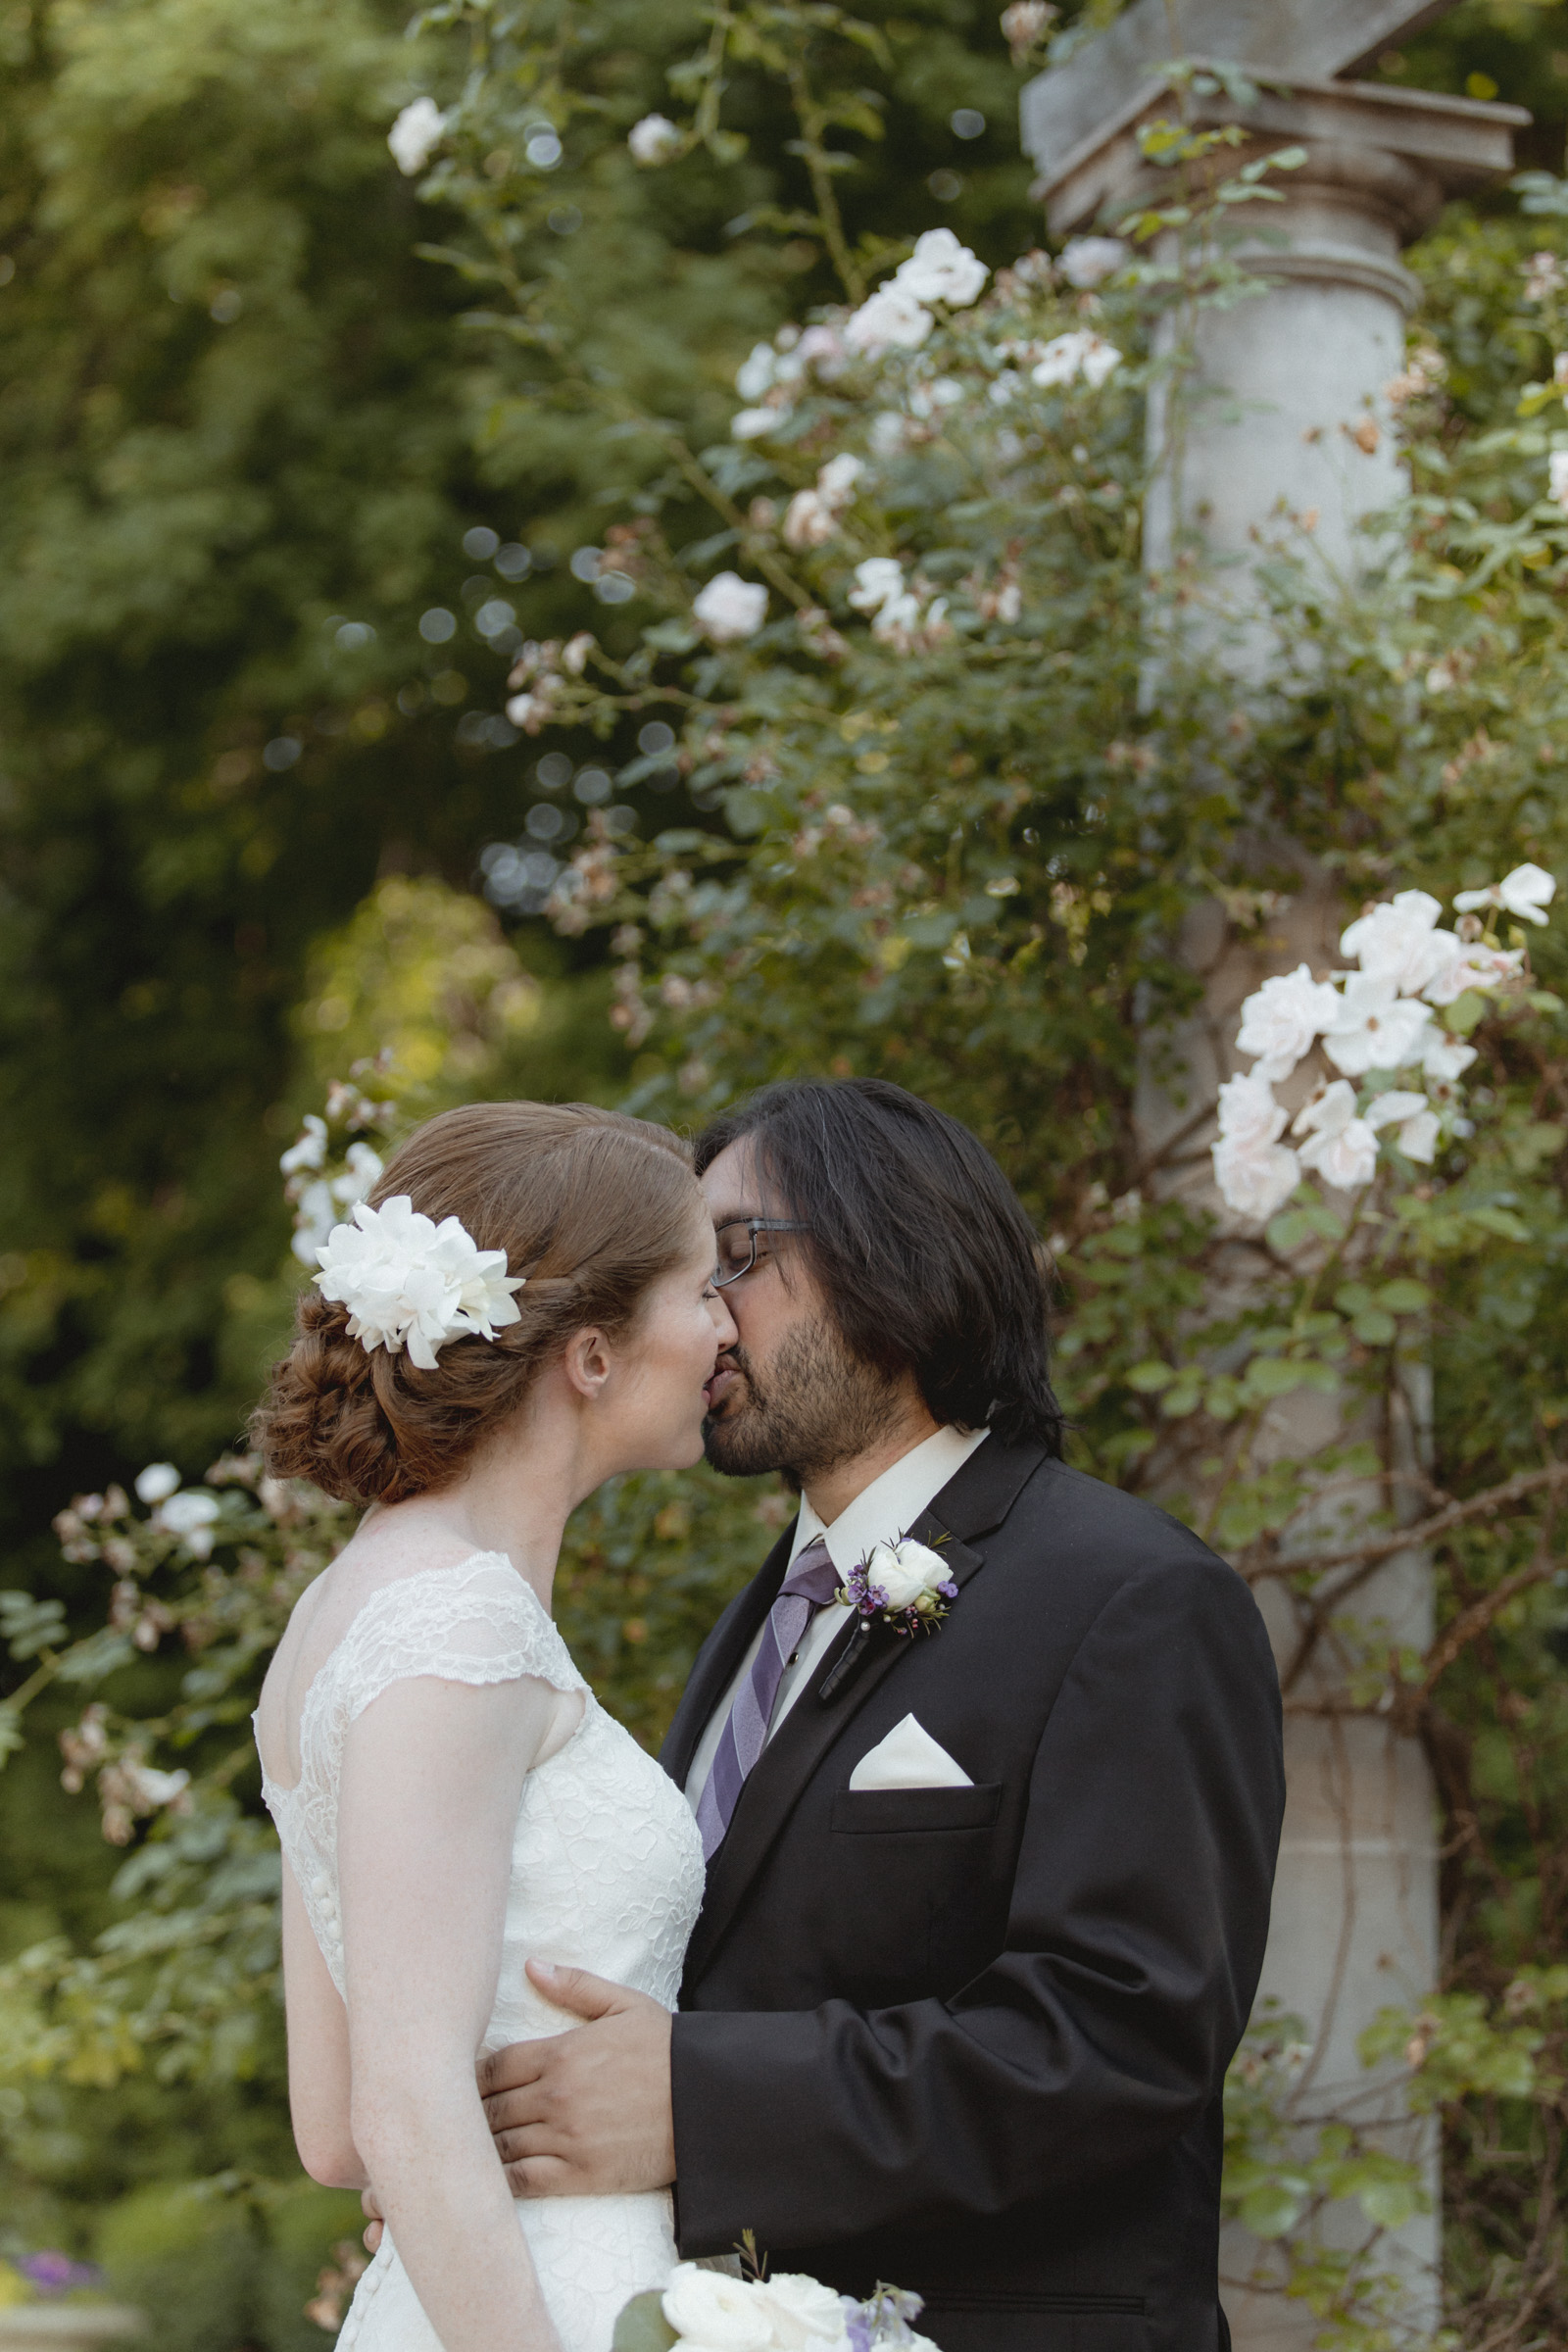 Couple shares a kiss in romantic garden - Estate at Florentine Gardens wedding - Hudson Valley Wedding - Kelsey & Anish's wedding - Amy Sims Photography